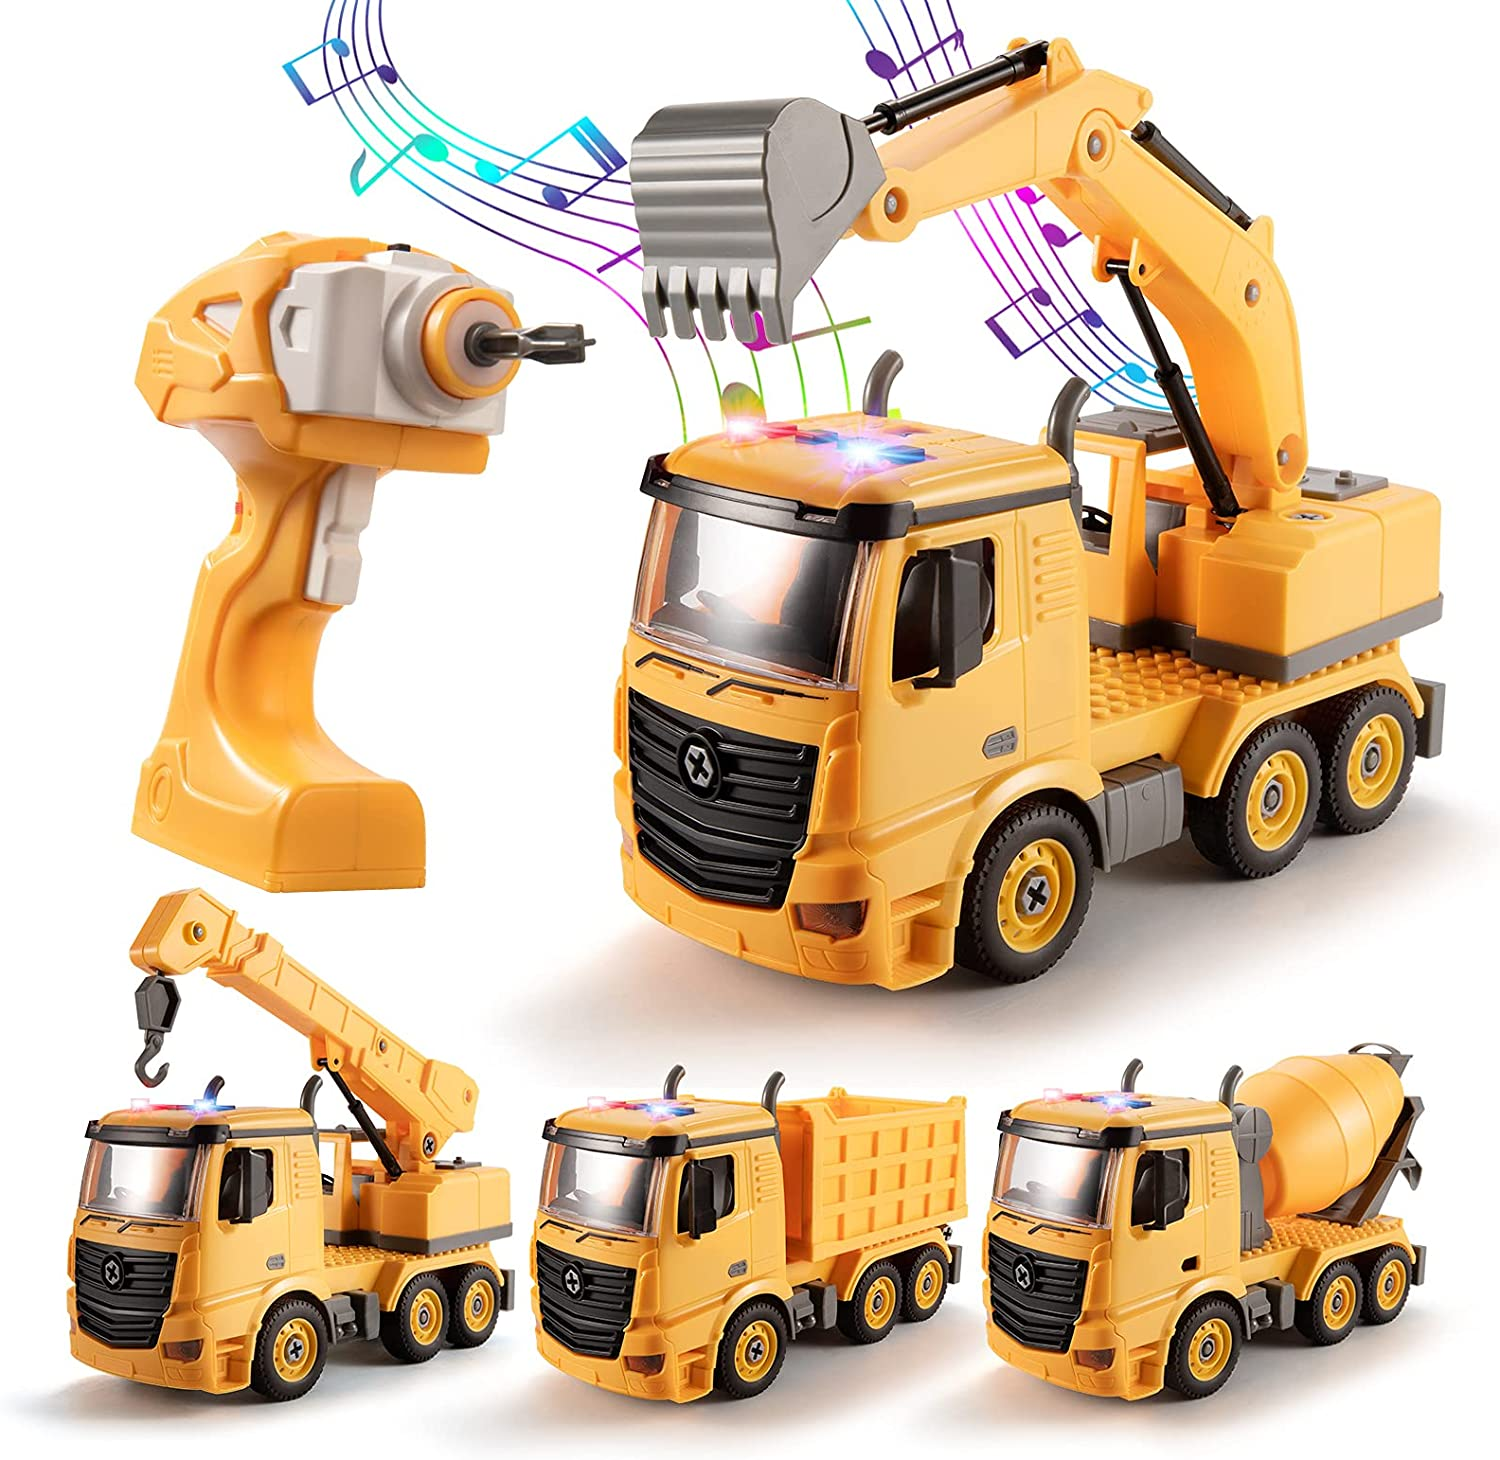 TEMI Take Apart Toys Construction Max 48% OFF High quality Truck - to Rem 4 in 1 Converts